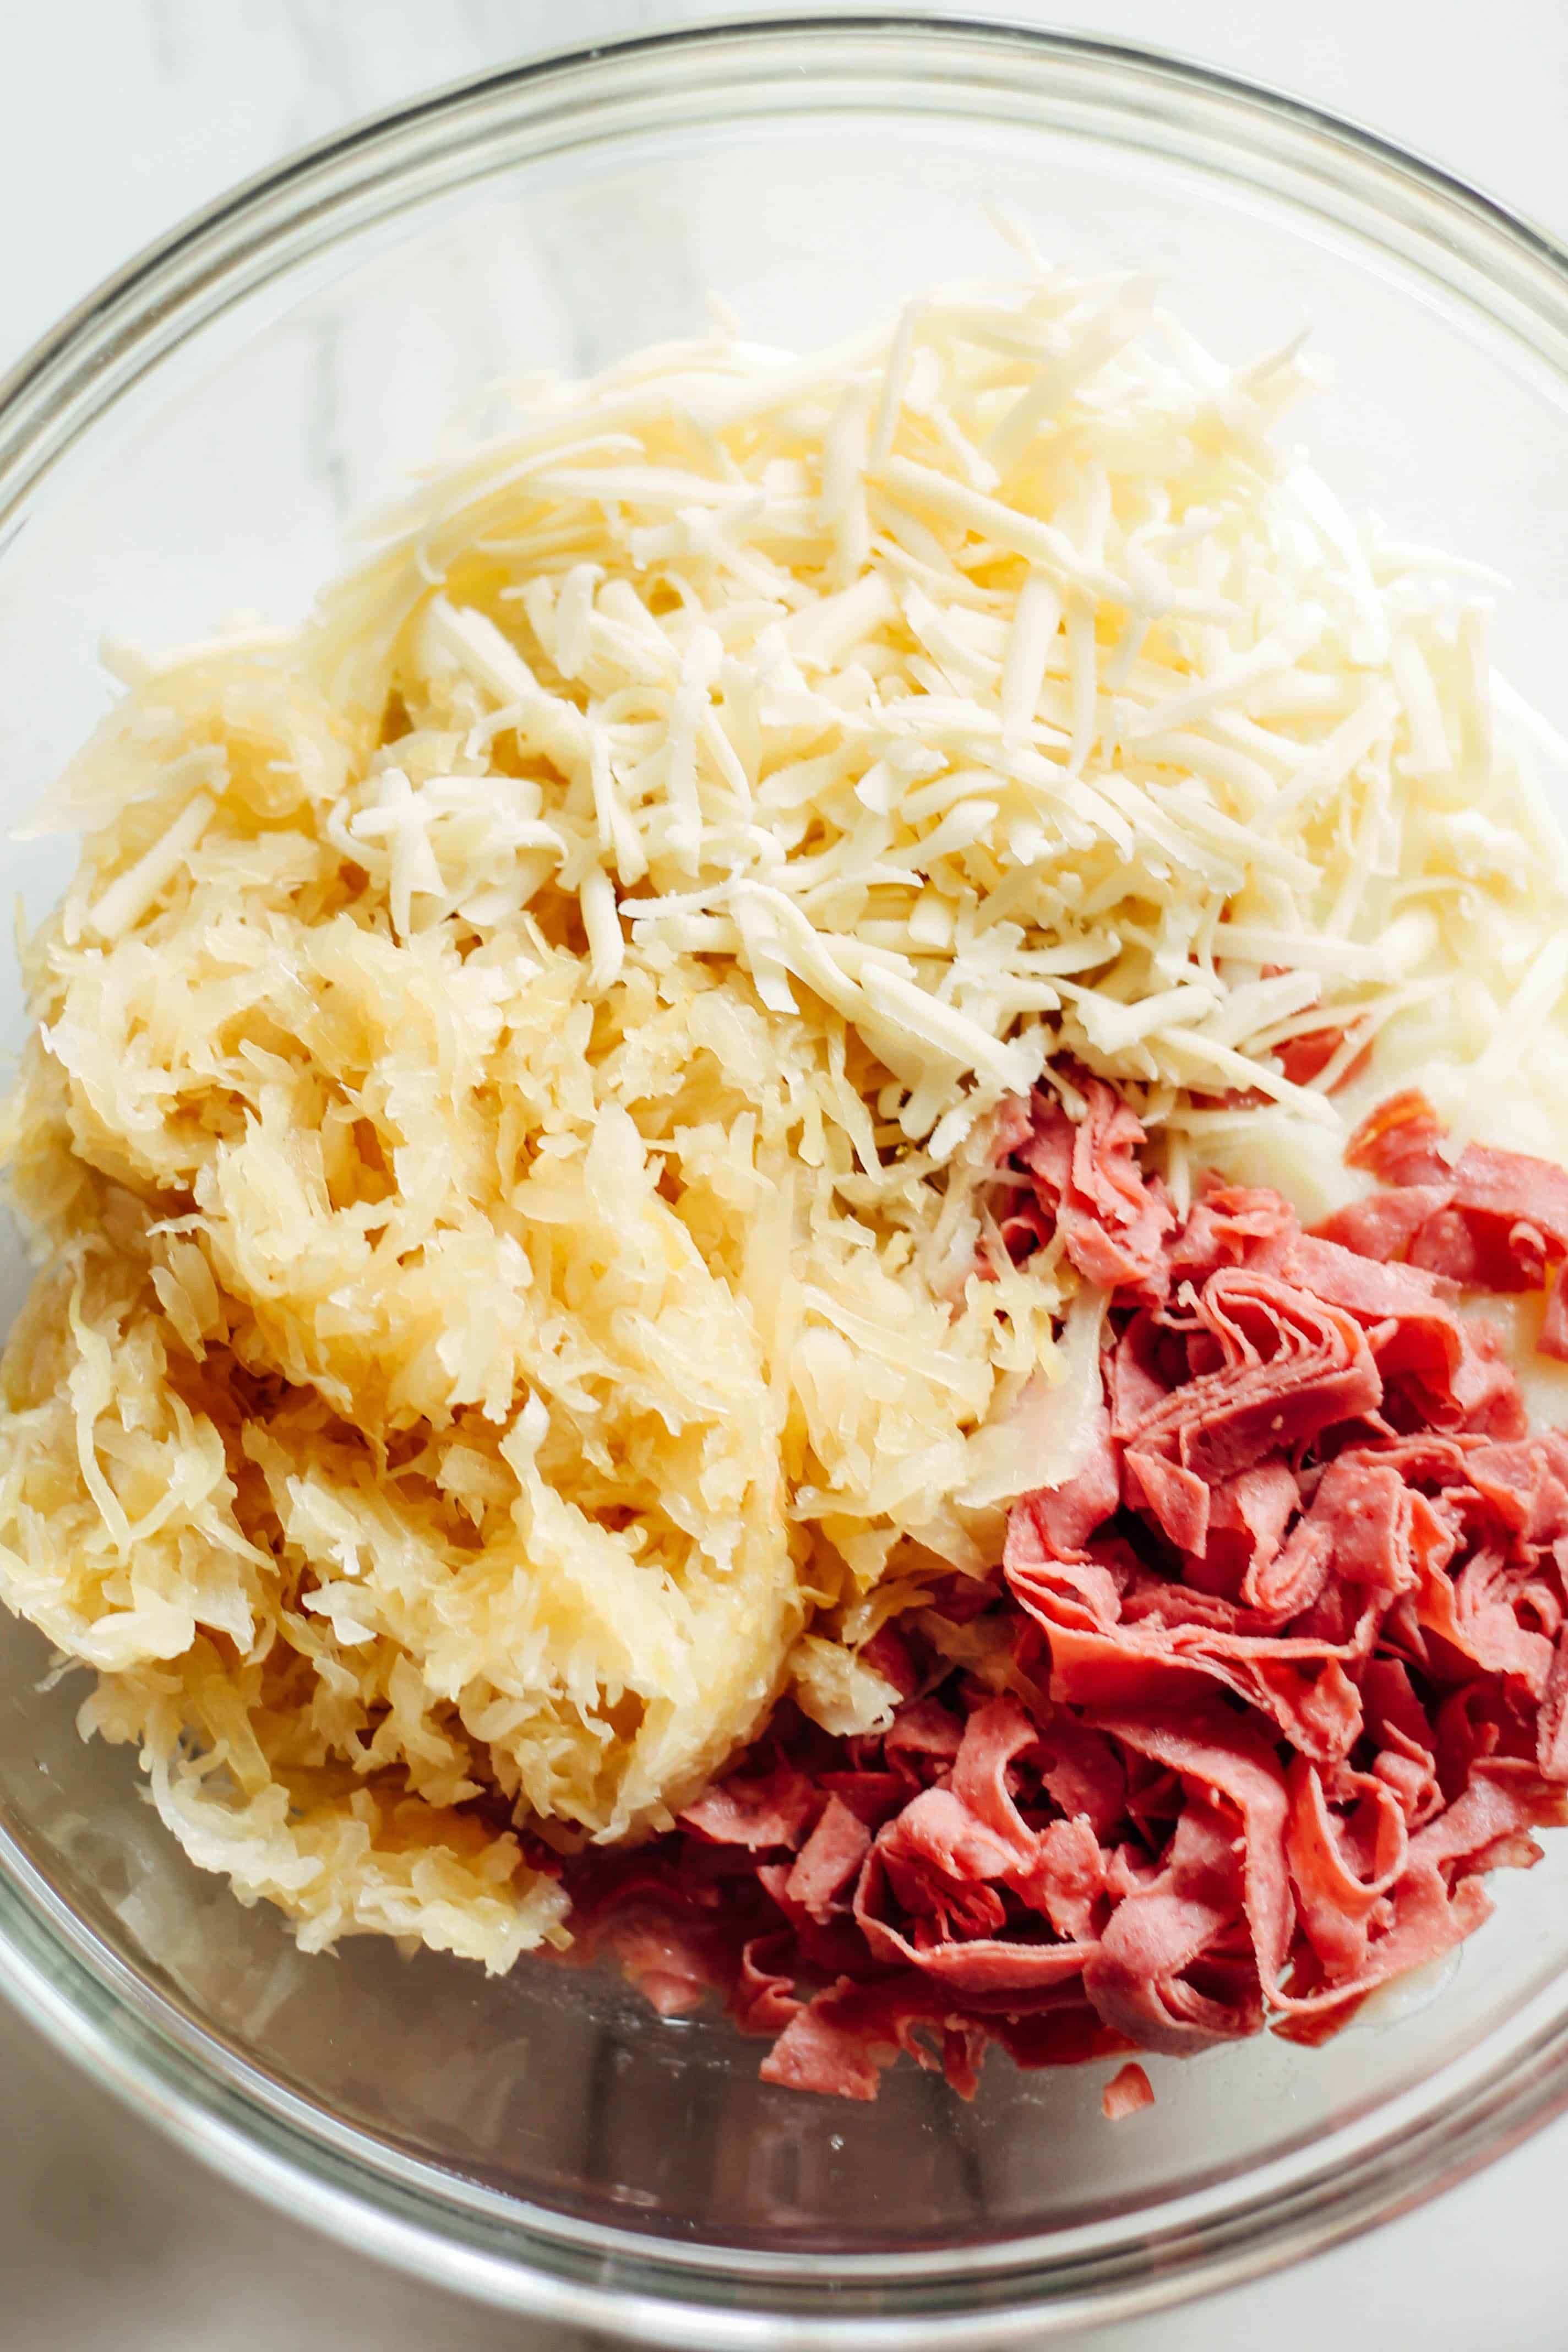 Lightened Up Reuben Dip | Destination Delish - A rich and creamy reuben dip made lighter with cauliflower and light cream cheese. Enjoy with pita chips, rye bread, or veggies!